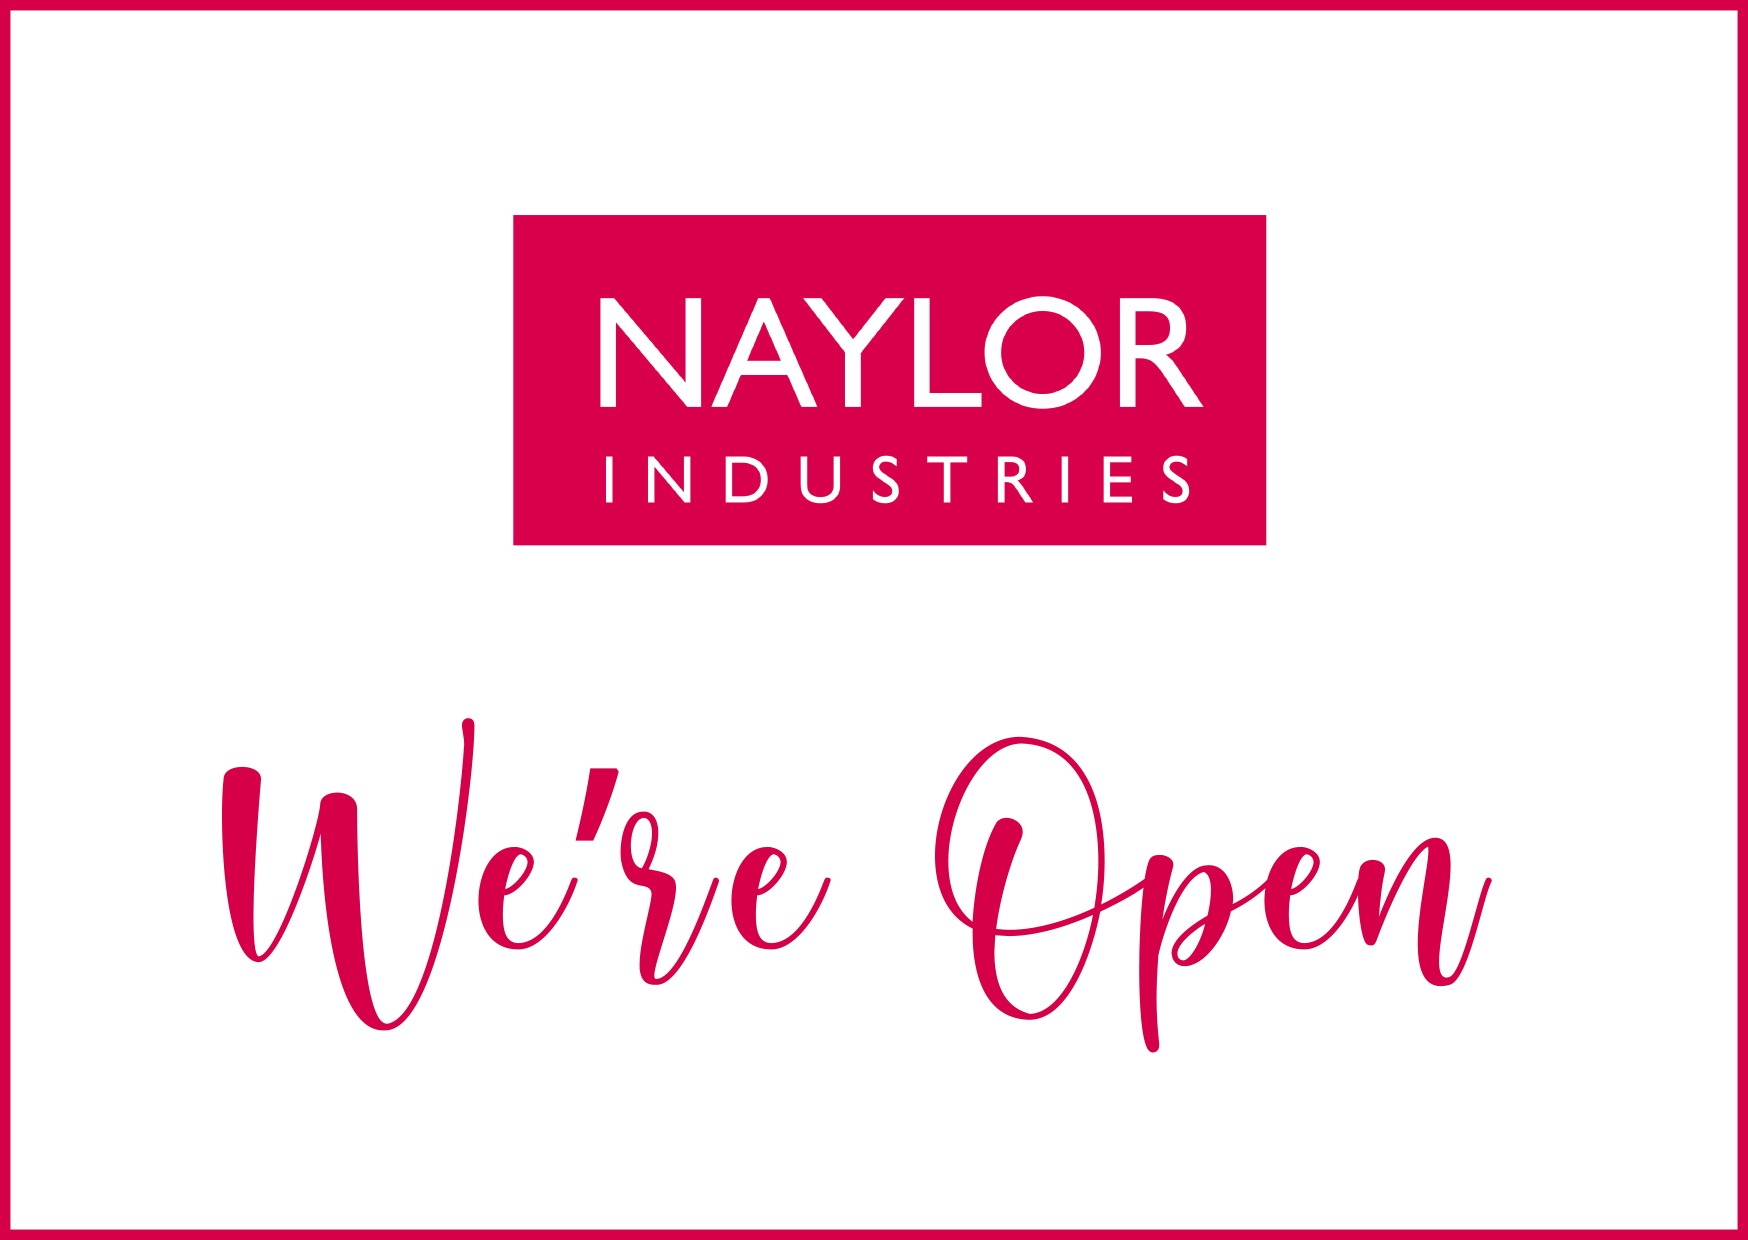 Naylor - We're Open